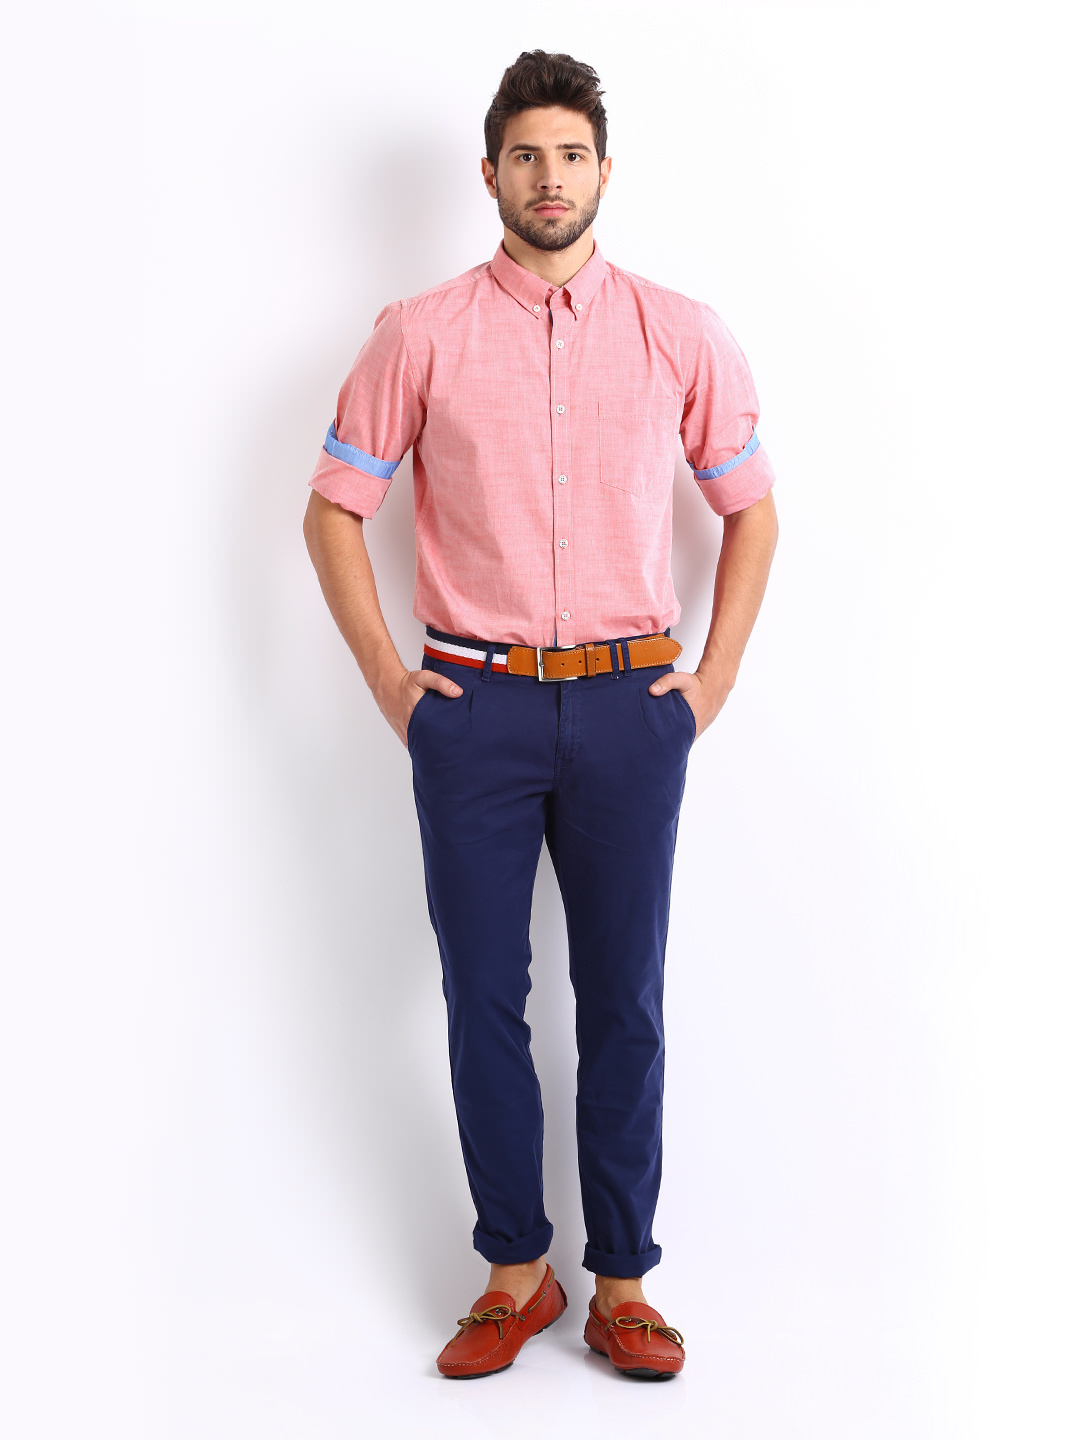 Getting the casual pink shirt for men